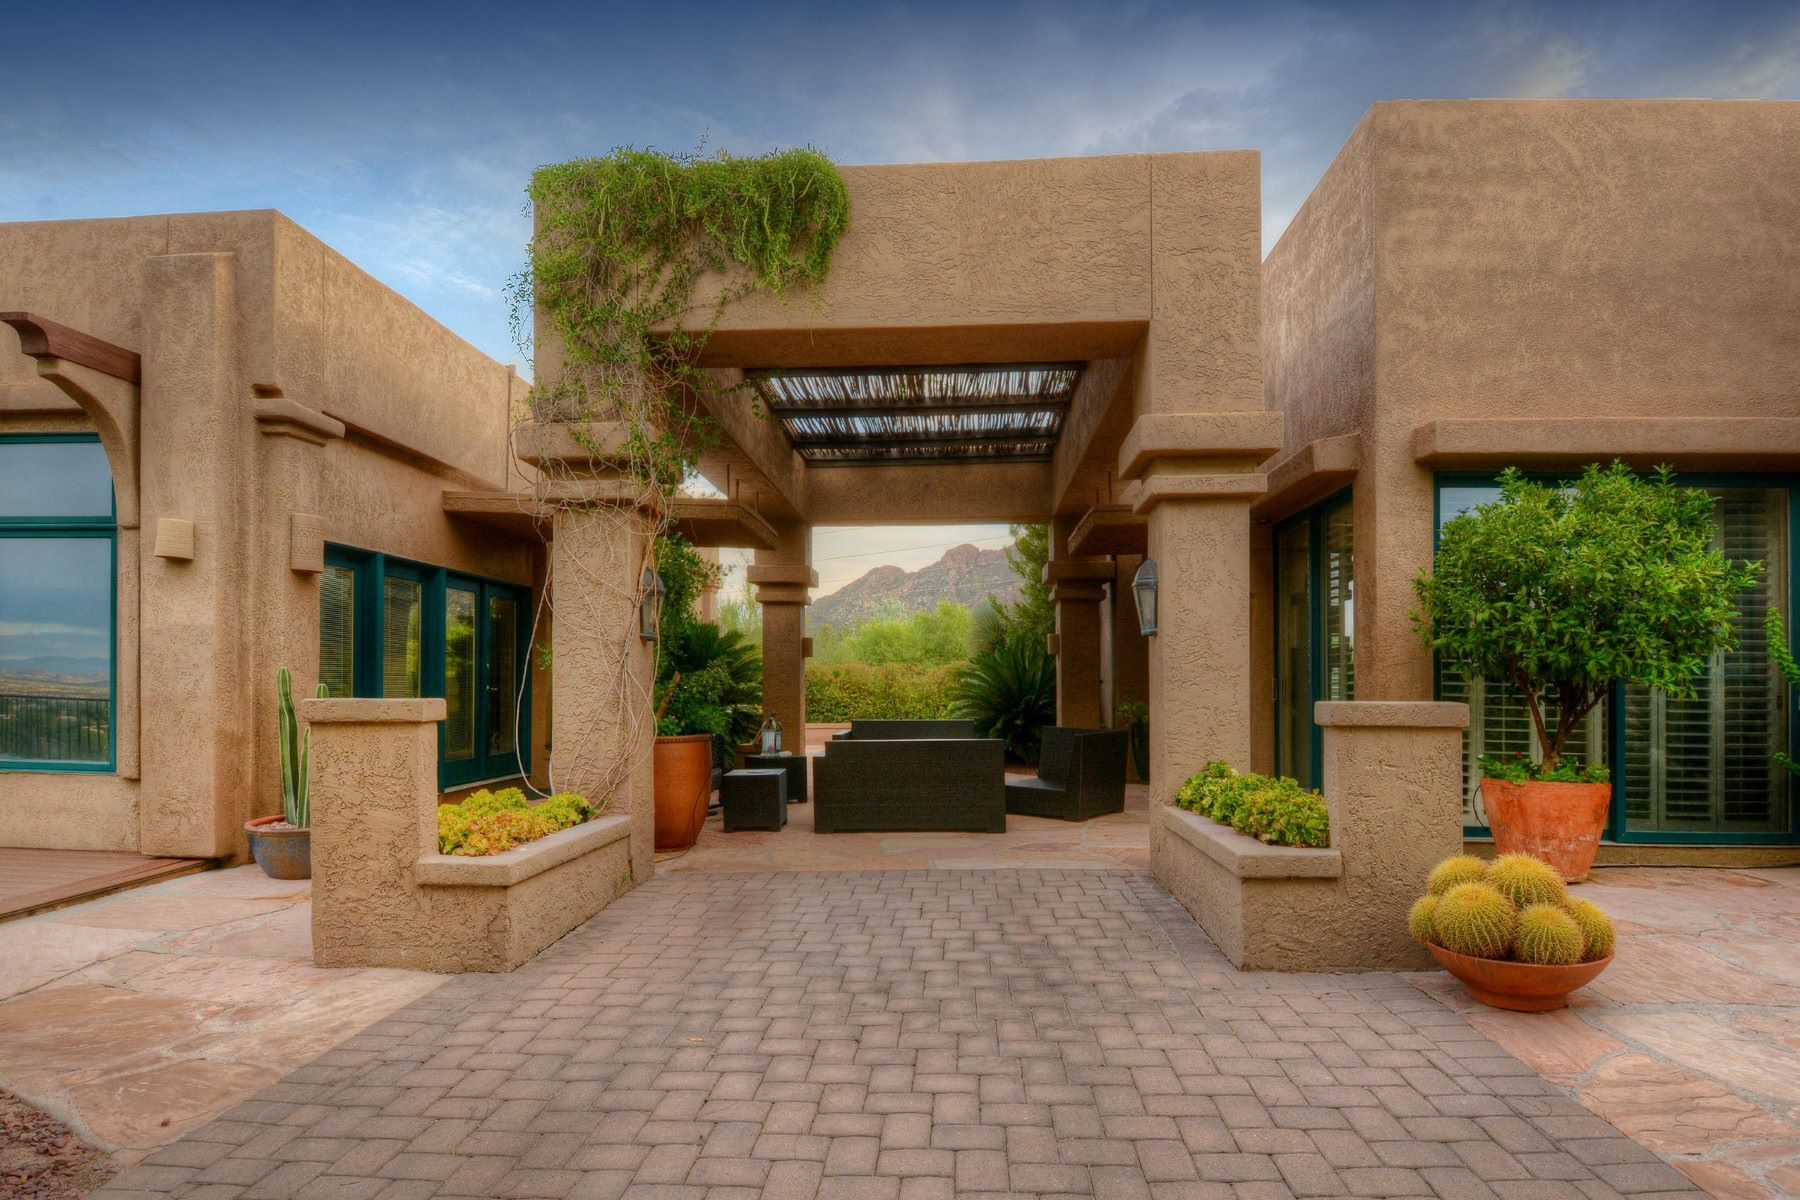 Moradia para Venda às Stunning Desert Contemporary artistic oasis retreat 6925 N Chaparral Place Tucson, Arizona, 85718 Estados Unidos